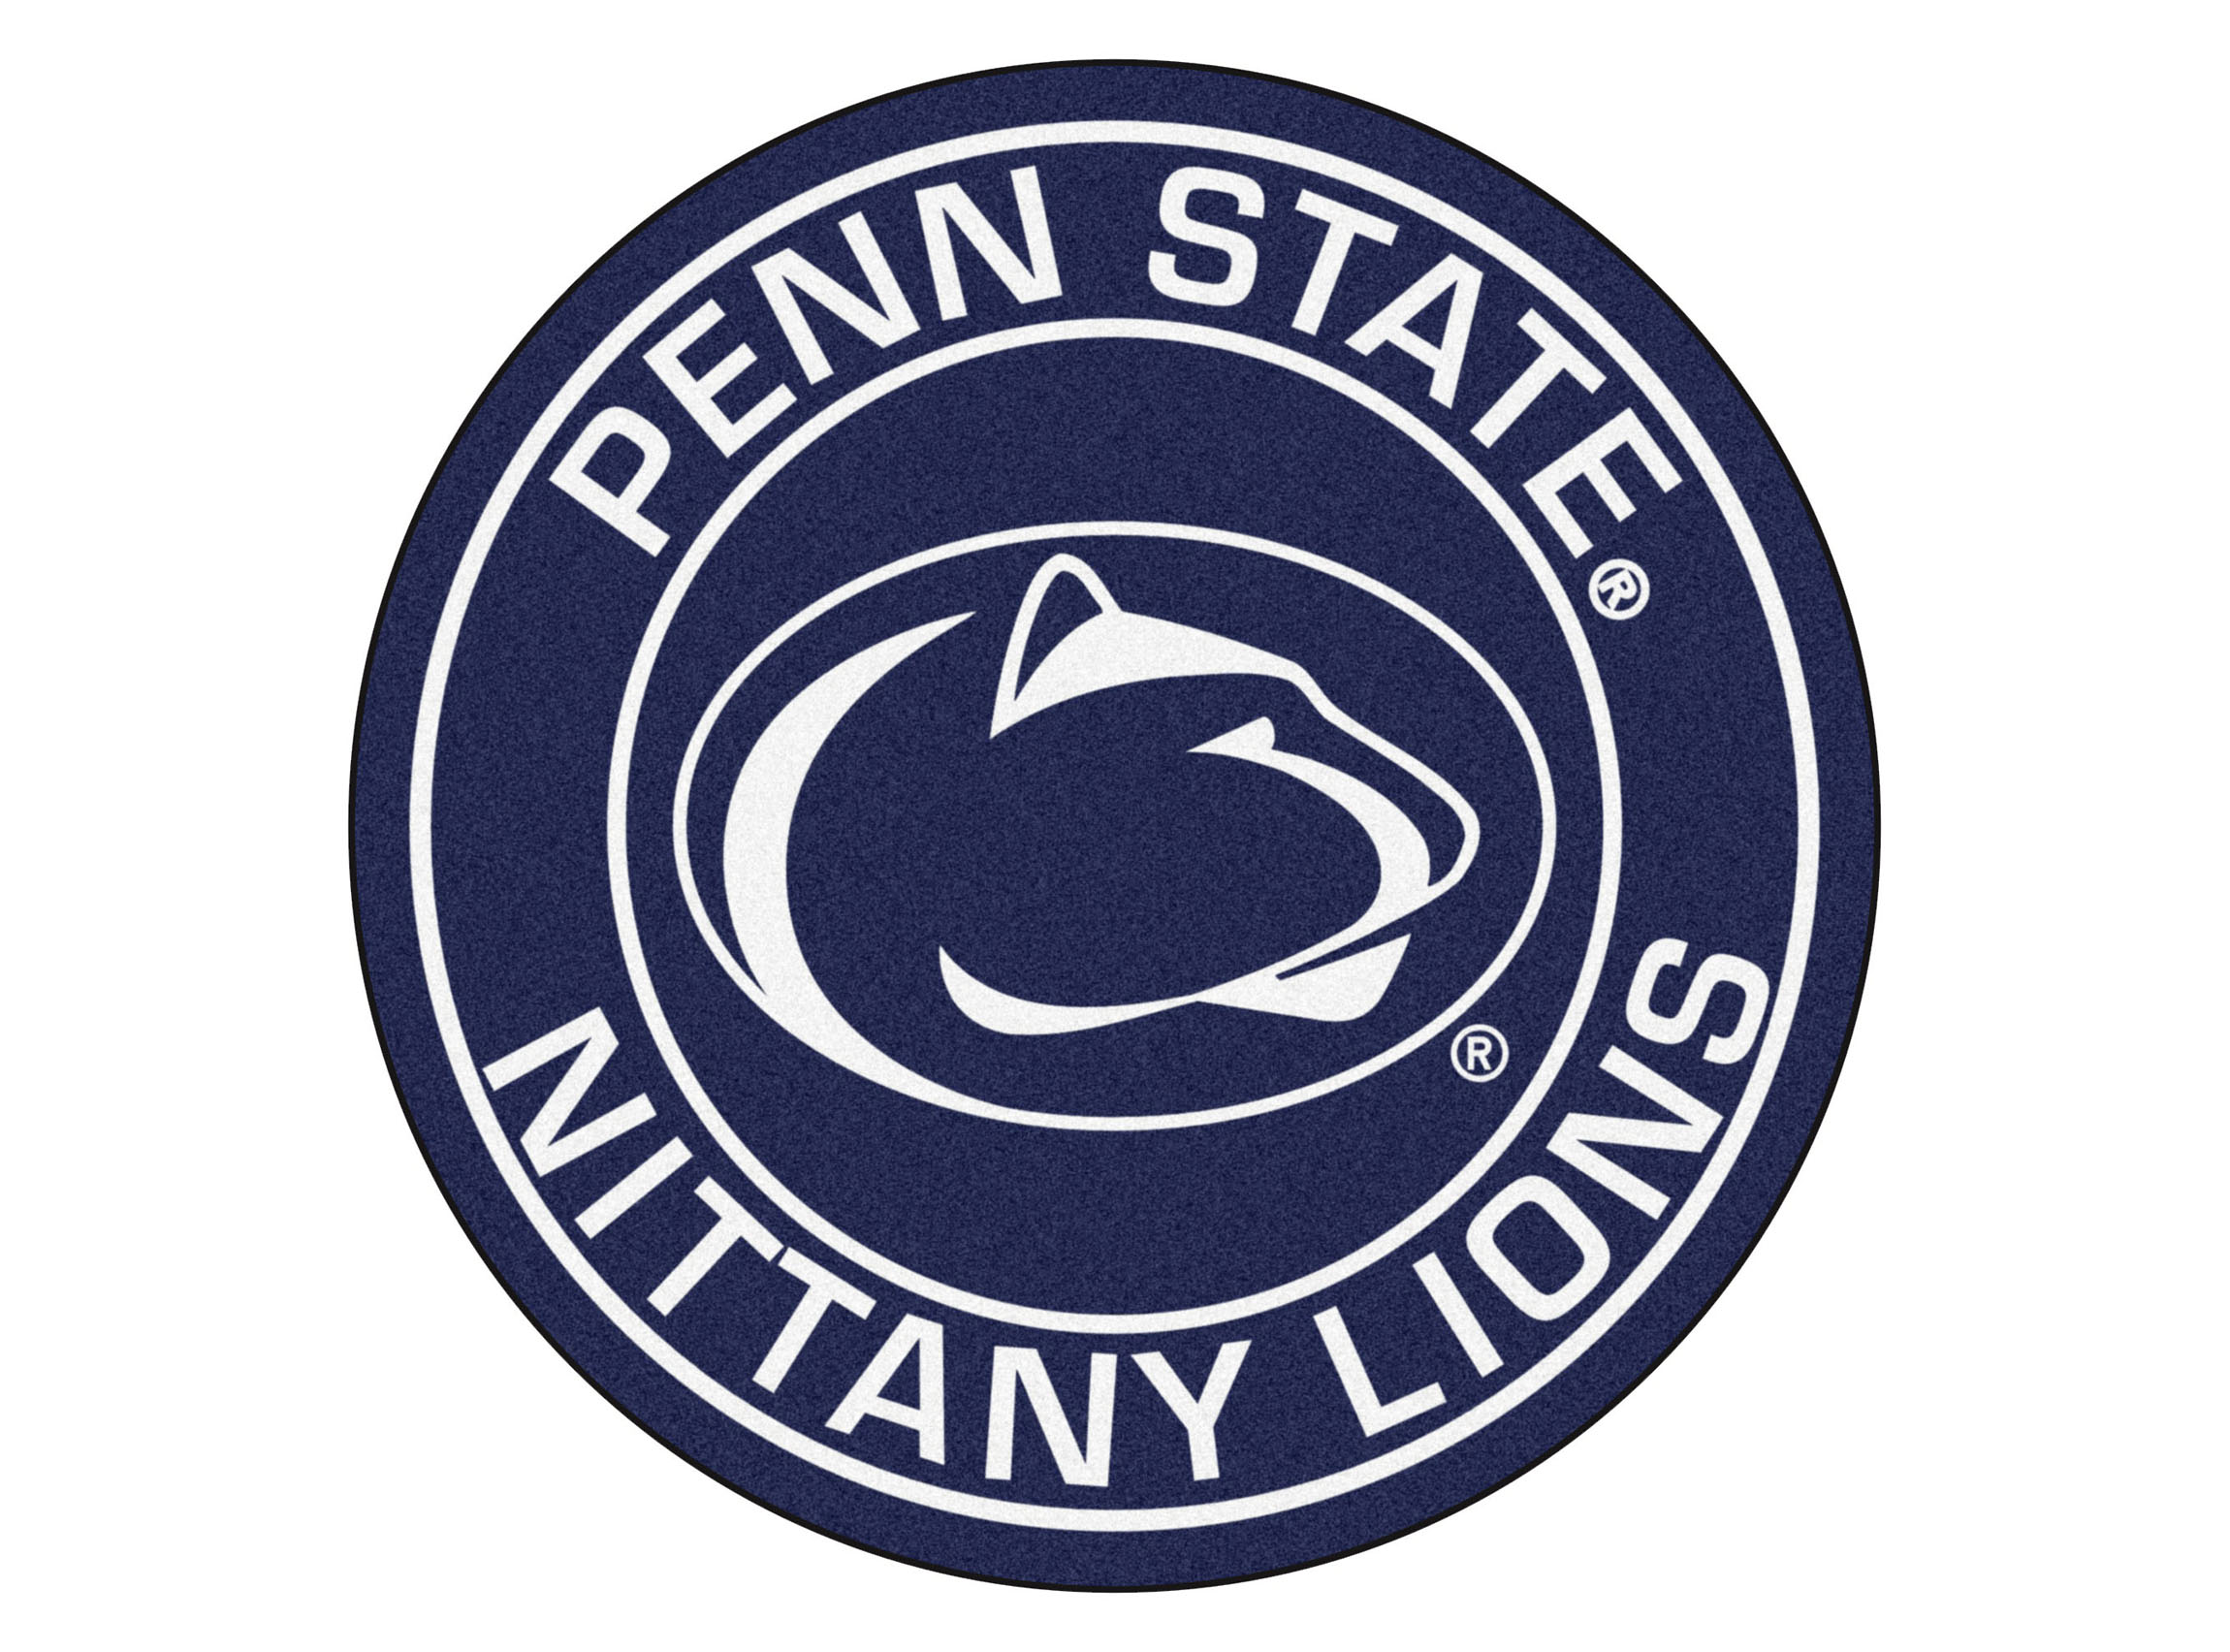 Meaning Penn State logo and symbol.